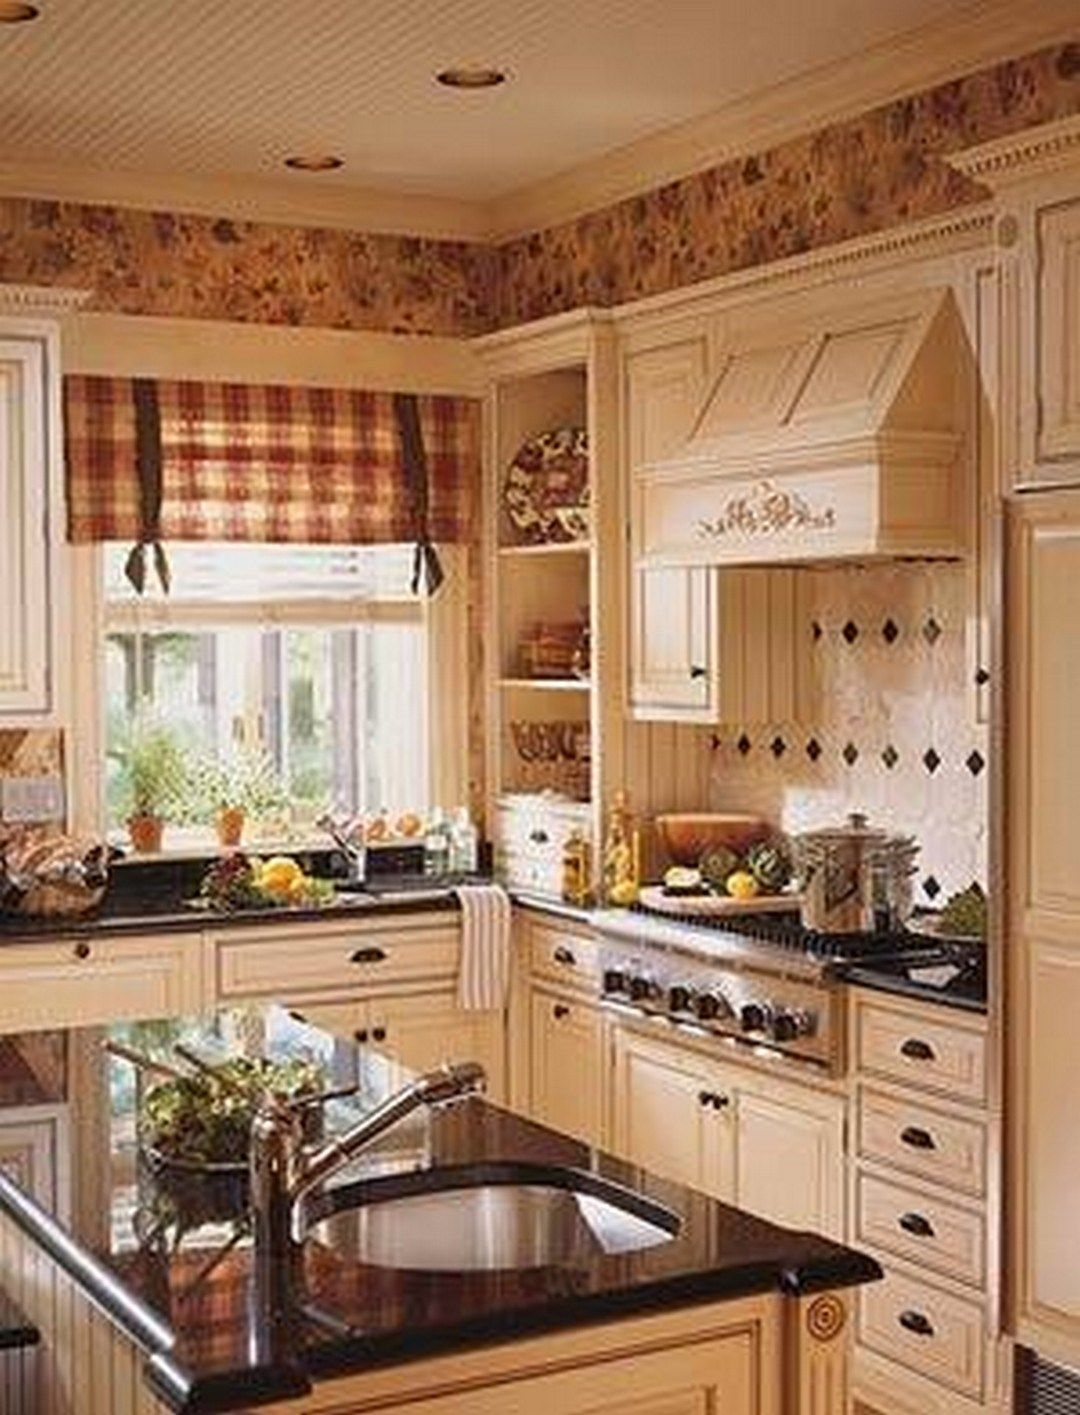 99 French Country Kitchen Modern Design Ideas (51